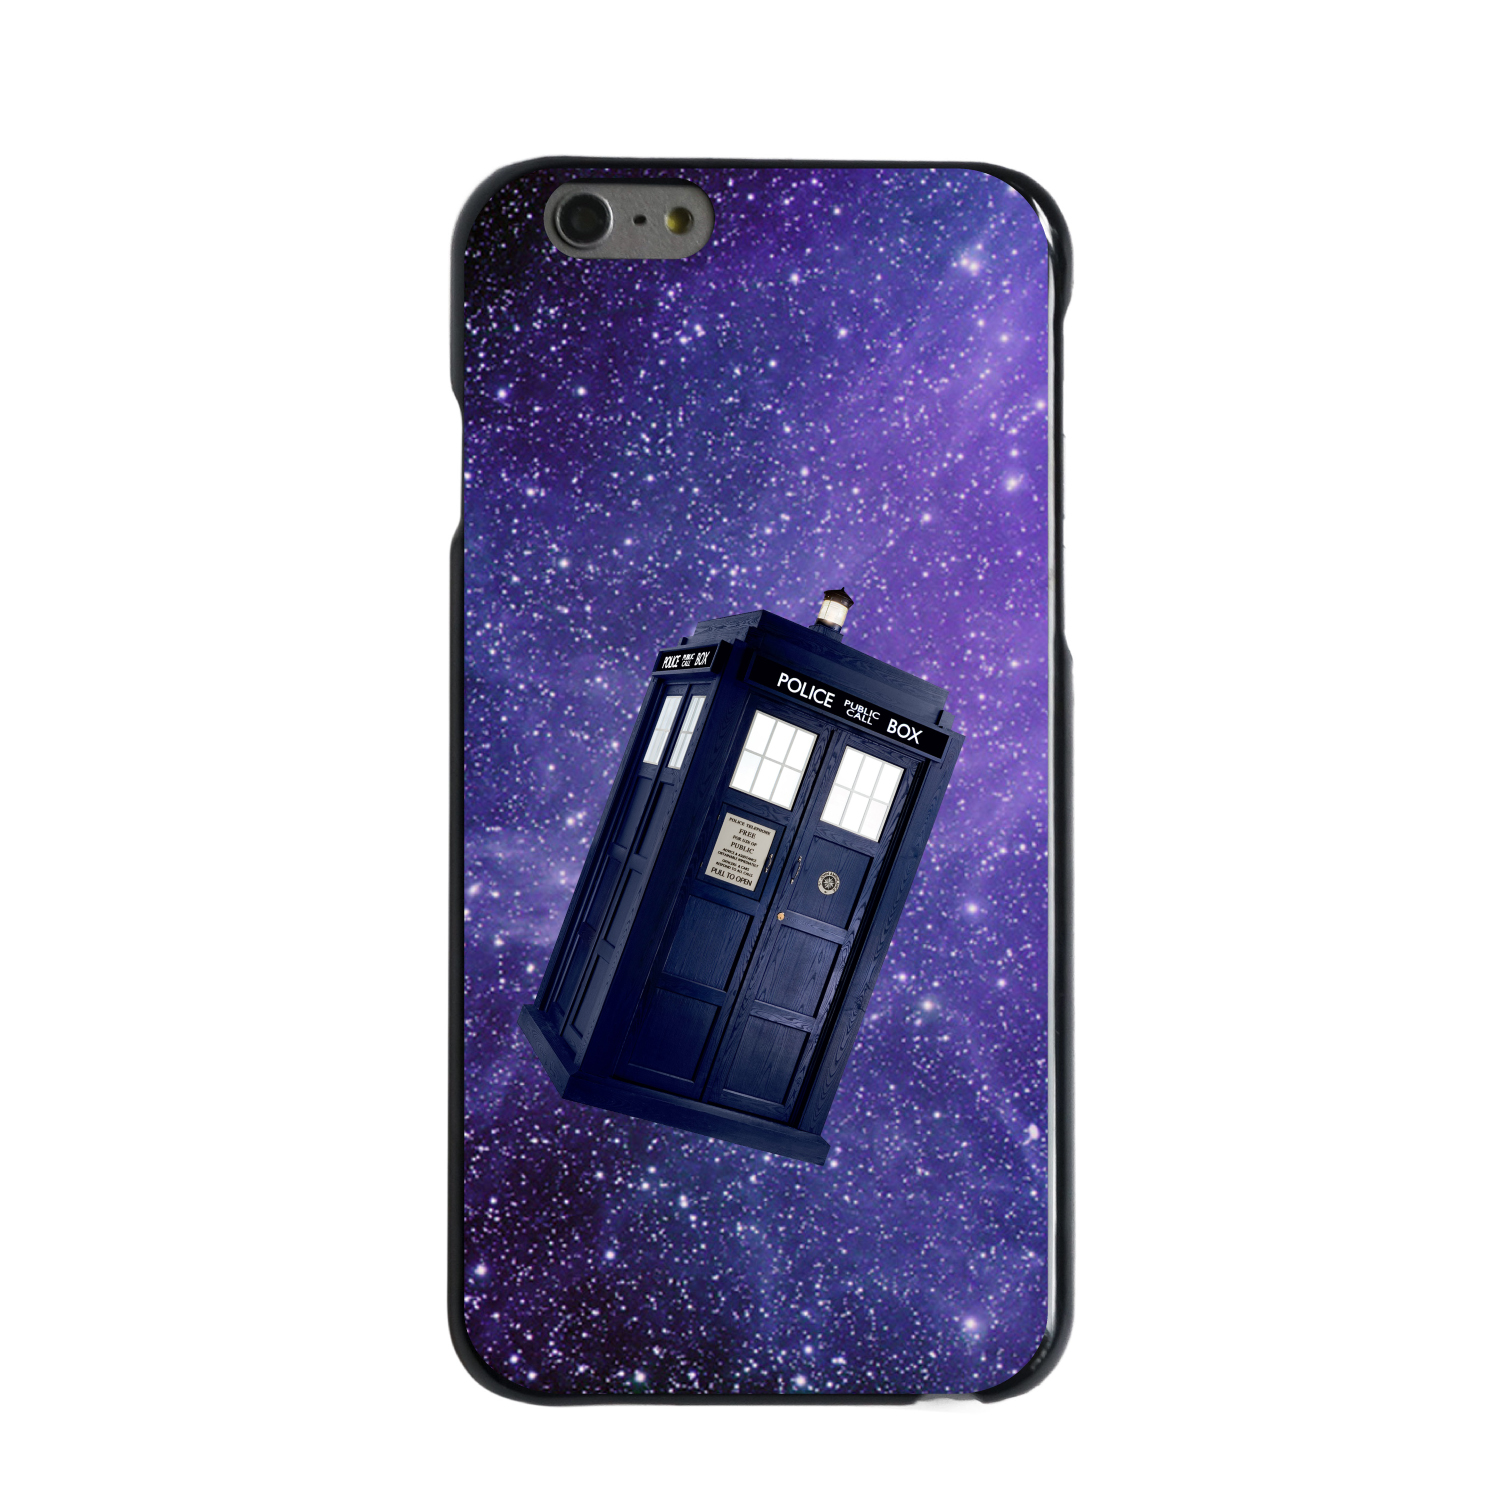 "CUSTOM Black Hard Plastic Snap-On Case for Apple iPhone 6 PLUS / 6S PLUS (5.5"" Screen) - TARDIS Floating in Space"